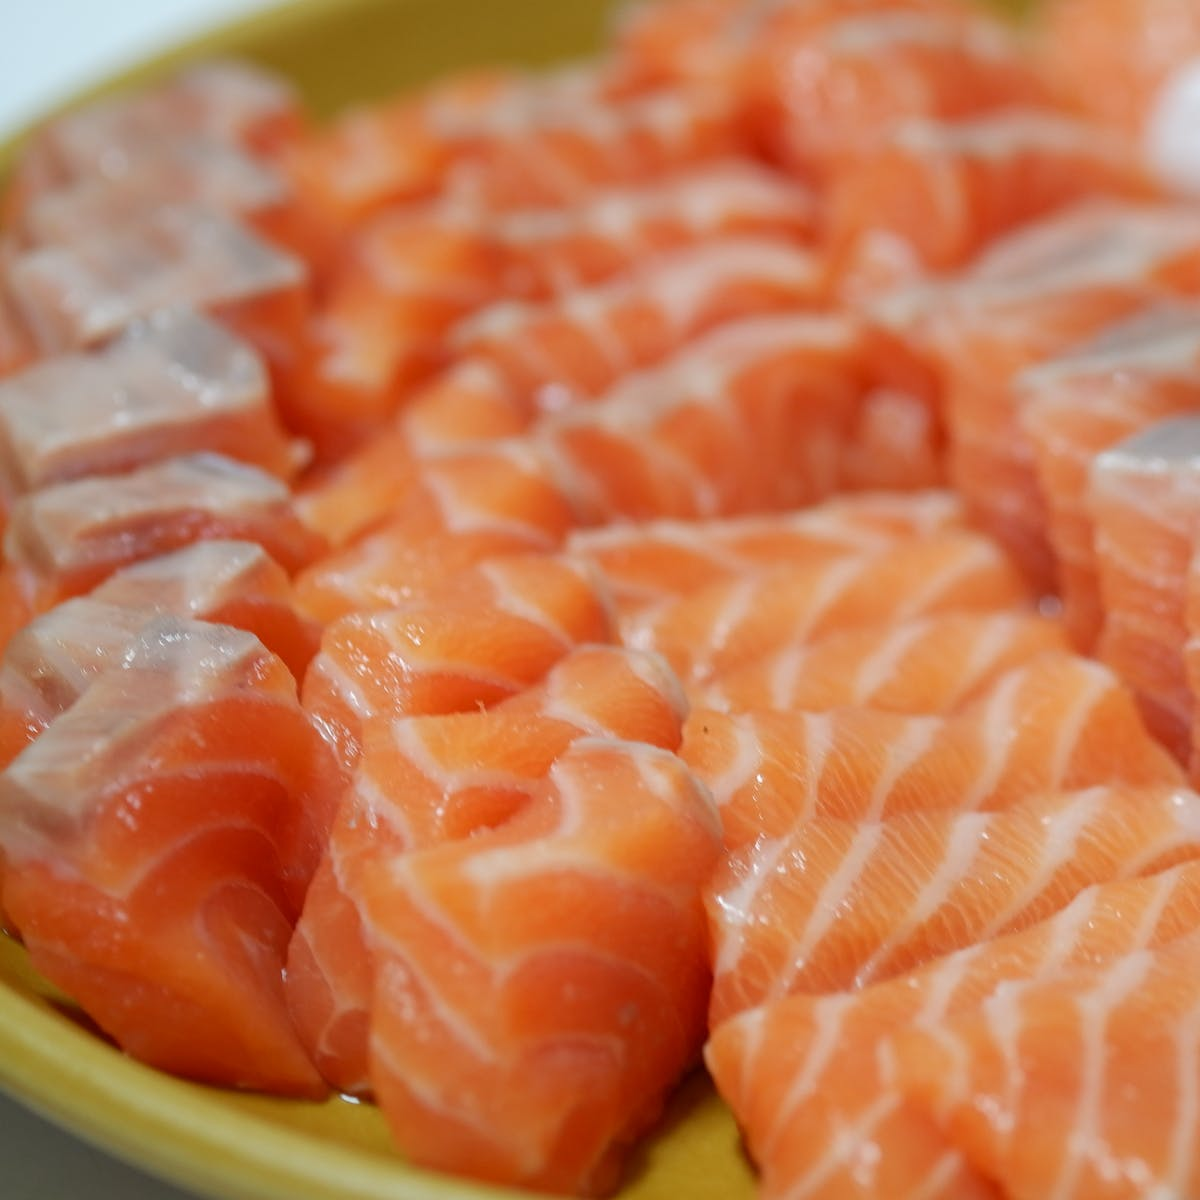 A 5-Foot Tapeworm Grew Inside a Man Because He Ate Too Much Raw Salmon